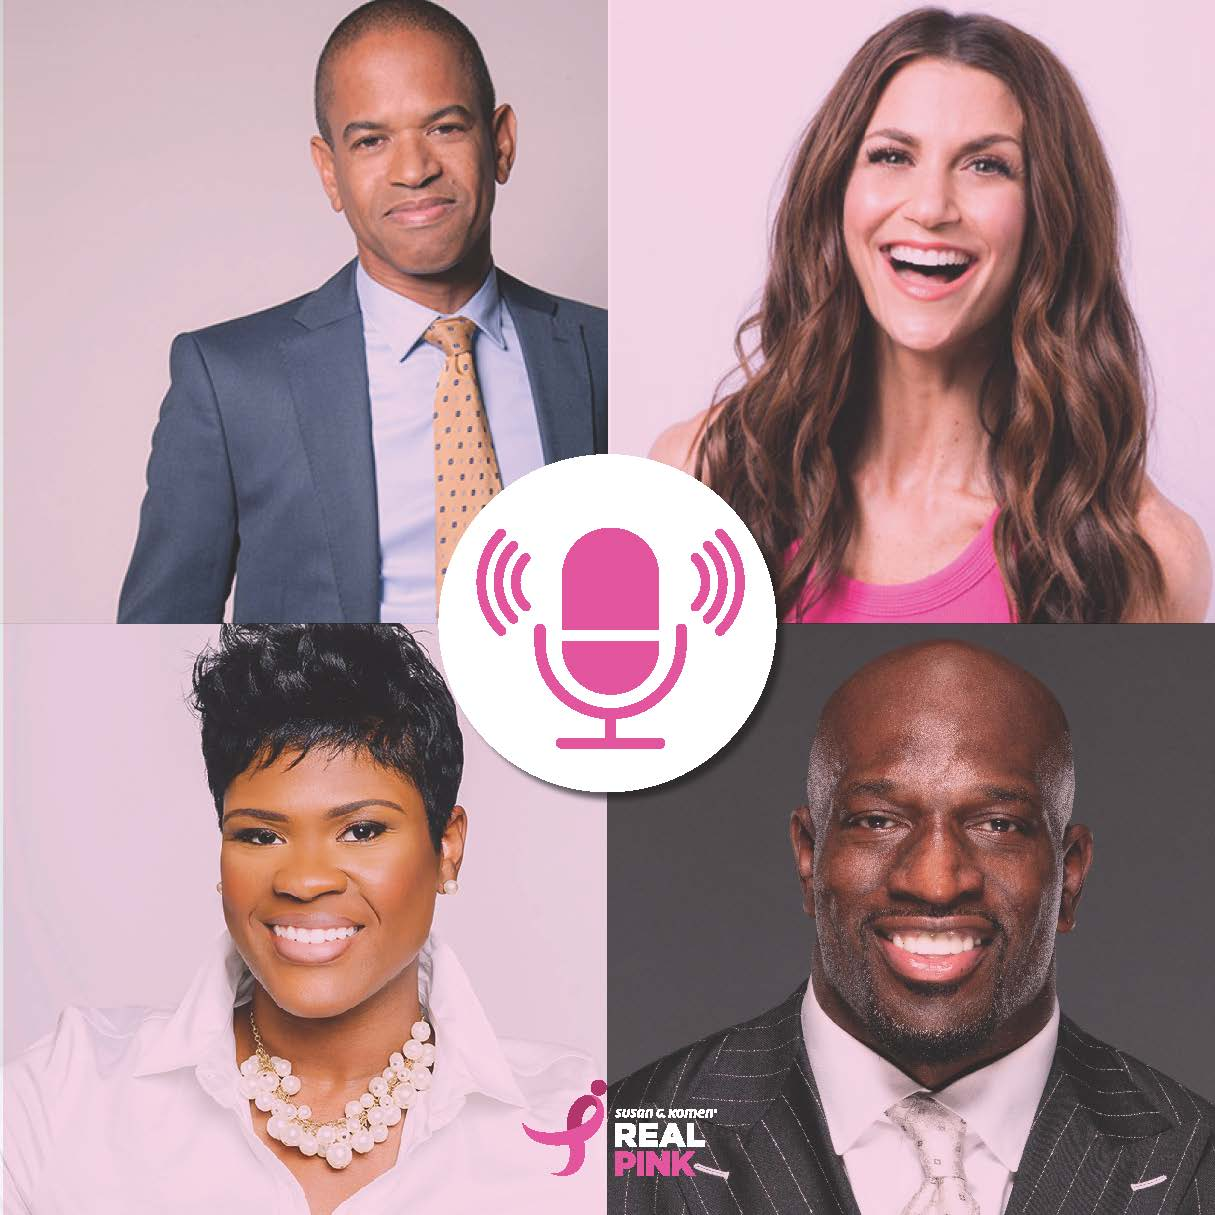 Susan G Komen Launches New Podcast For Those Touched By Breast Cancer Susan G Komen Central Tennessee